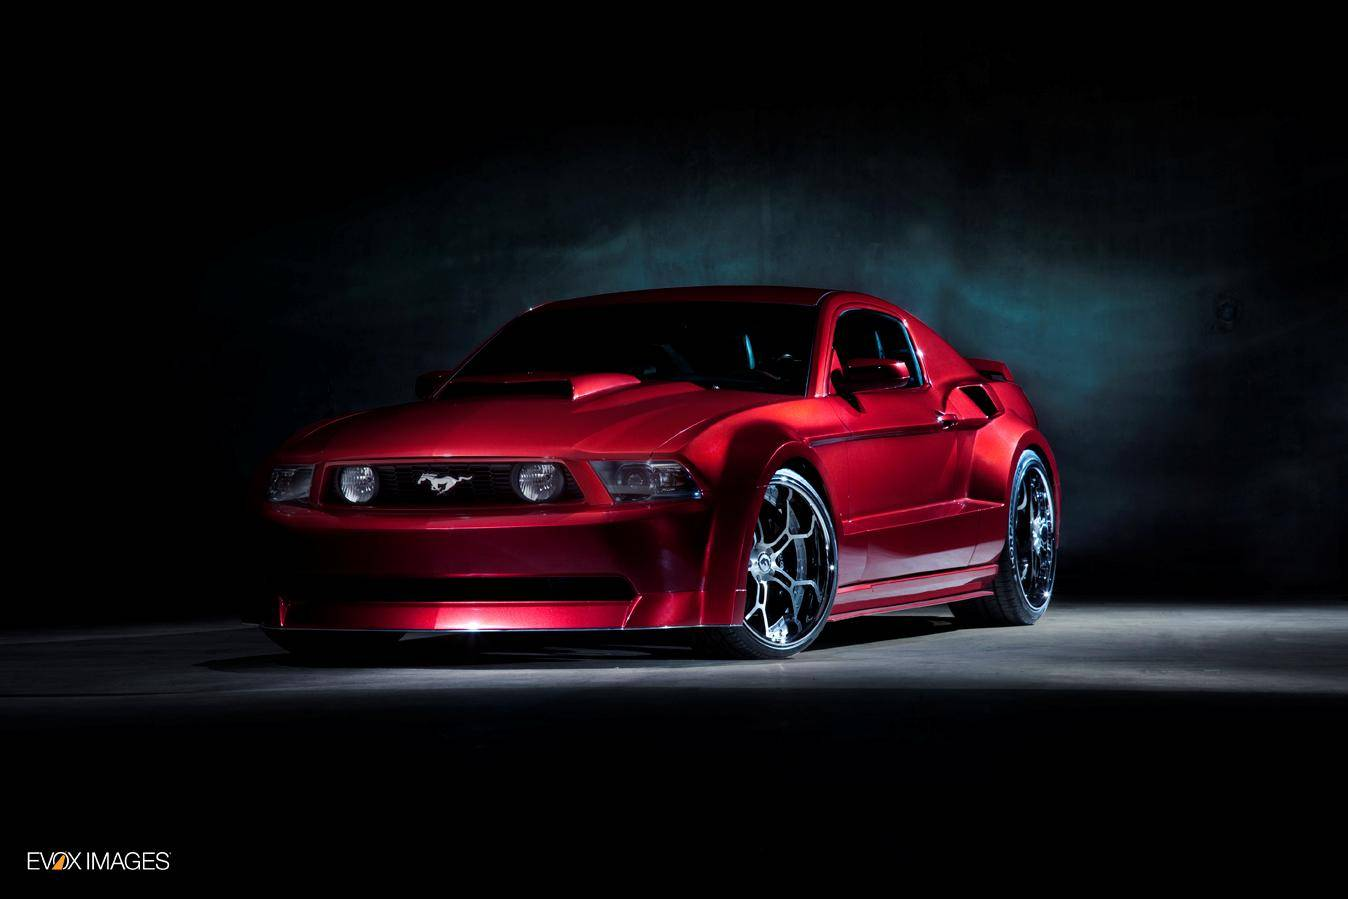 pink and black mustang wallpaper 25 high resolution wallpaper - Mustang 2014 Black Wallpaper